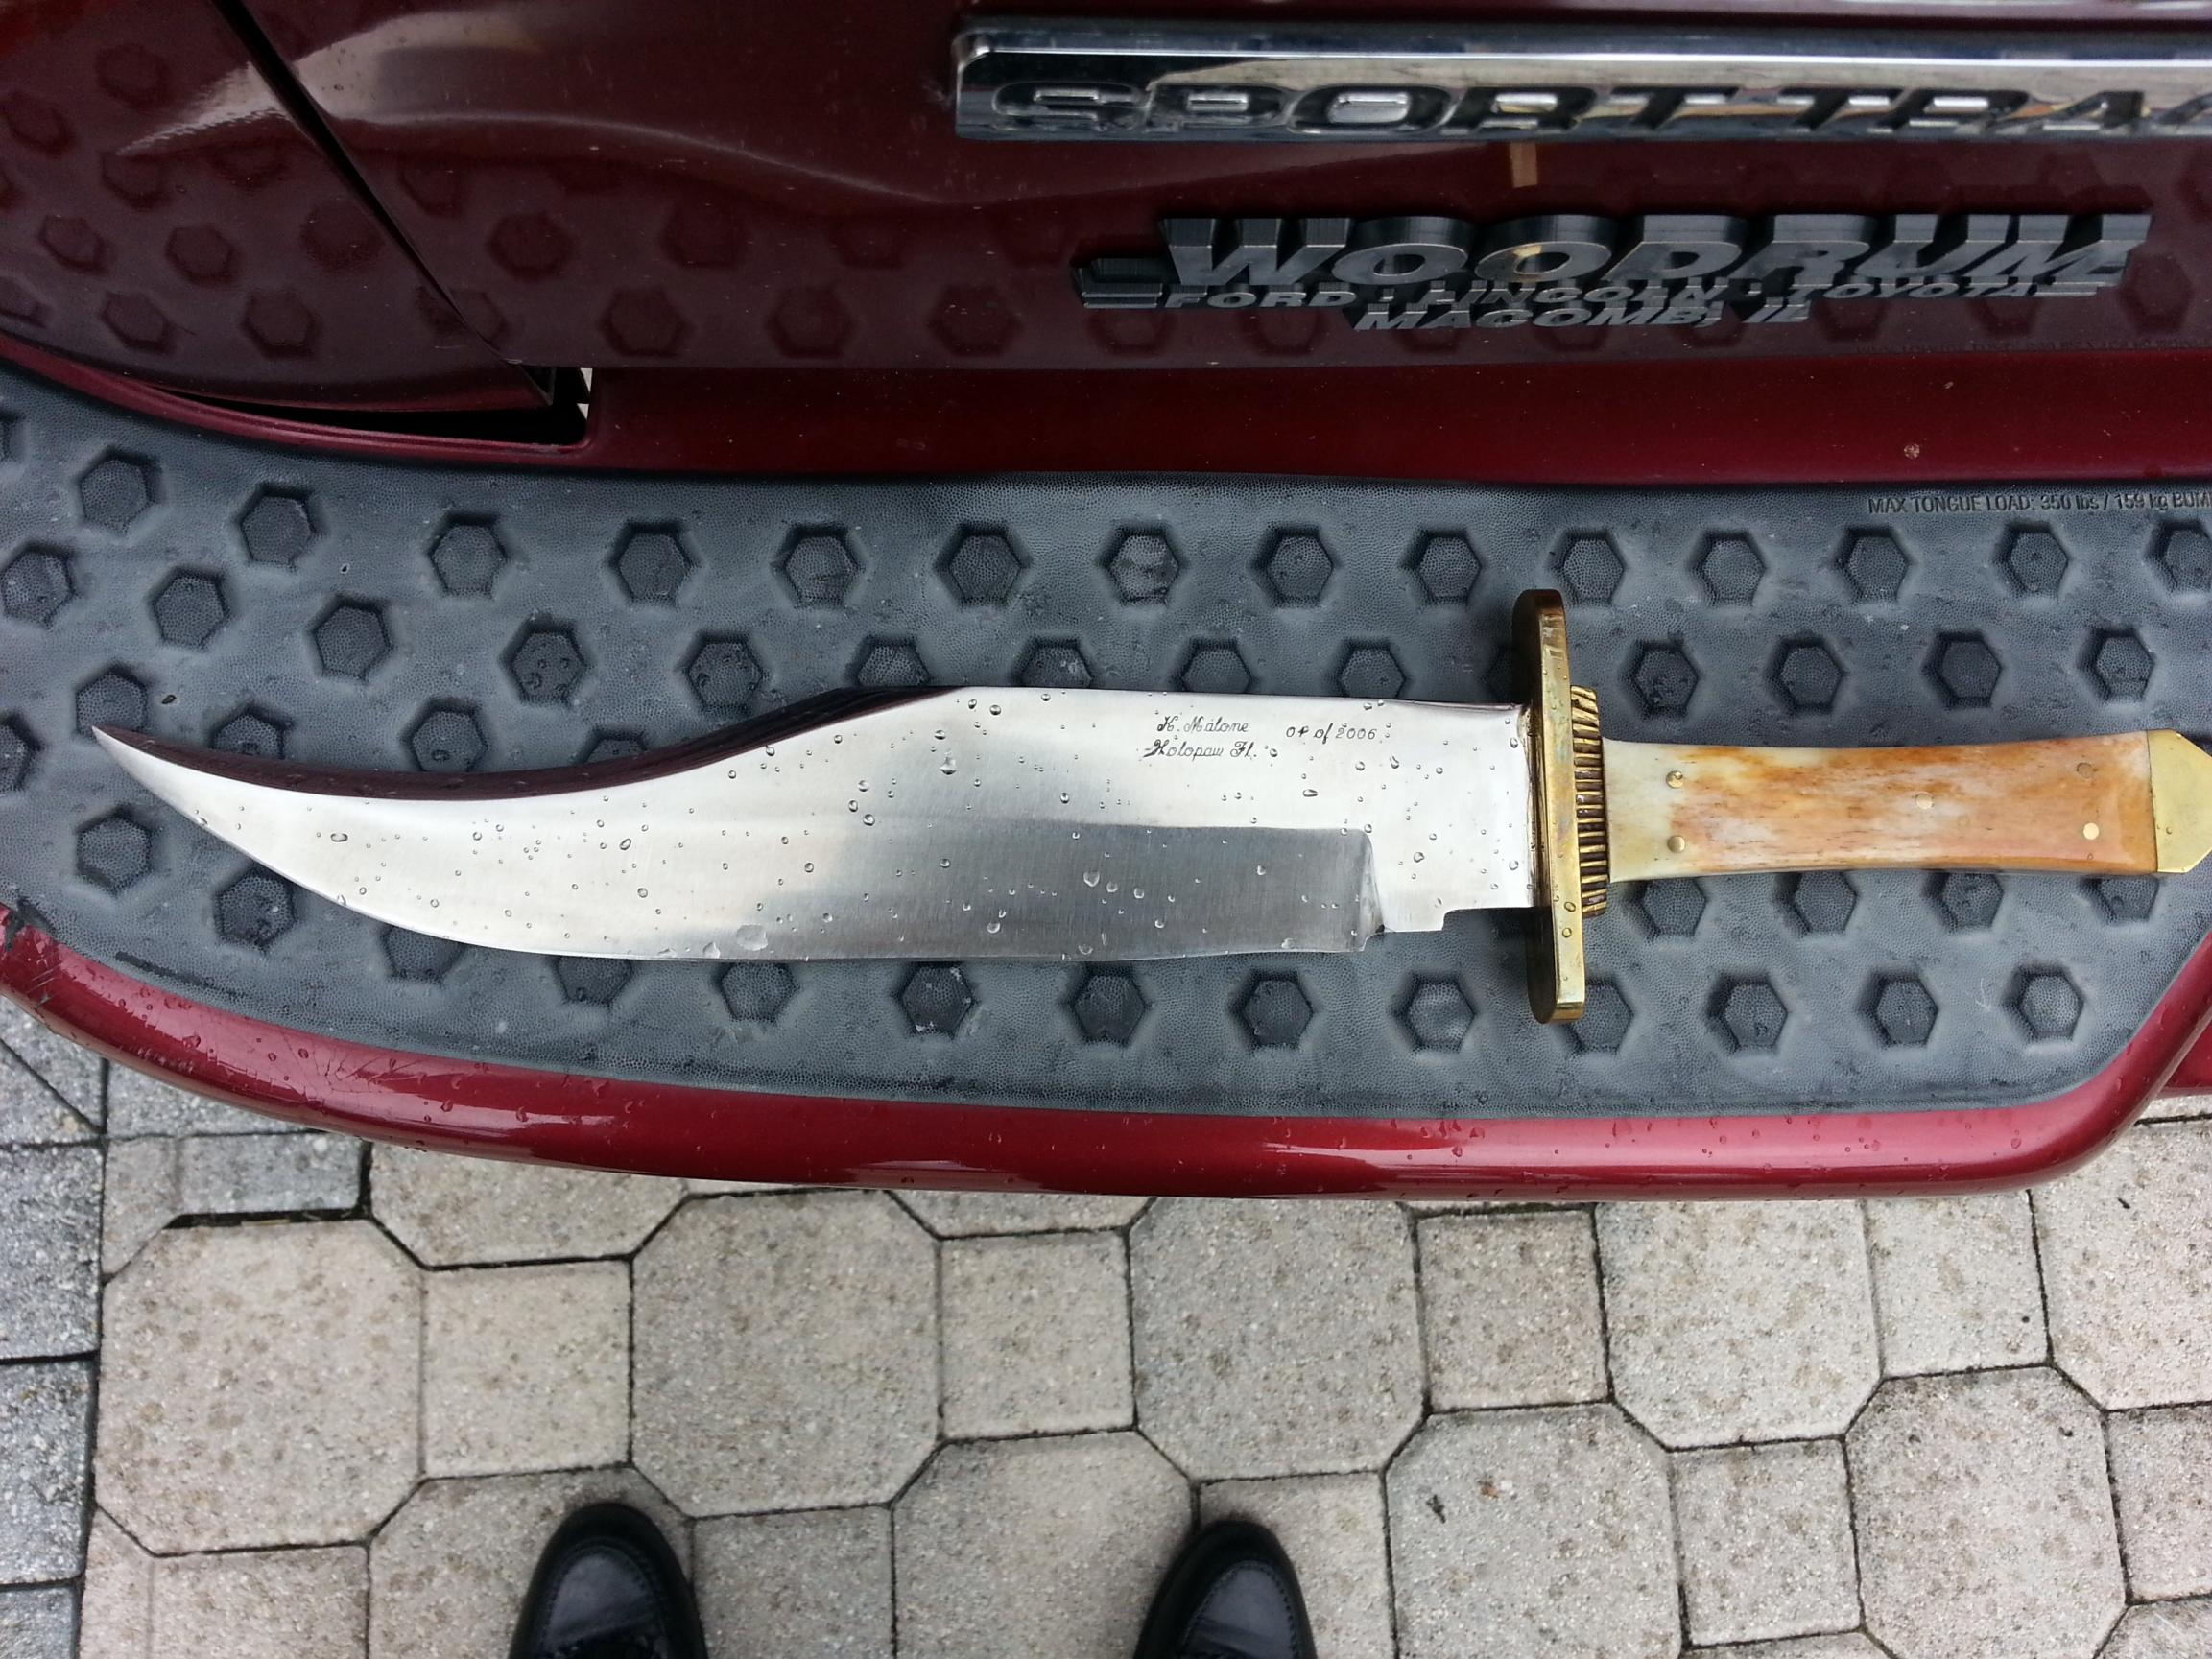 wanting to buy a bowie knife-20130722_182540.jpg